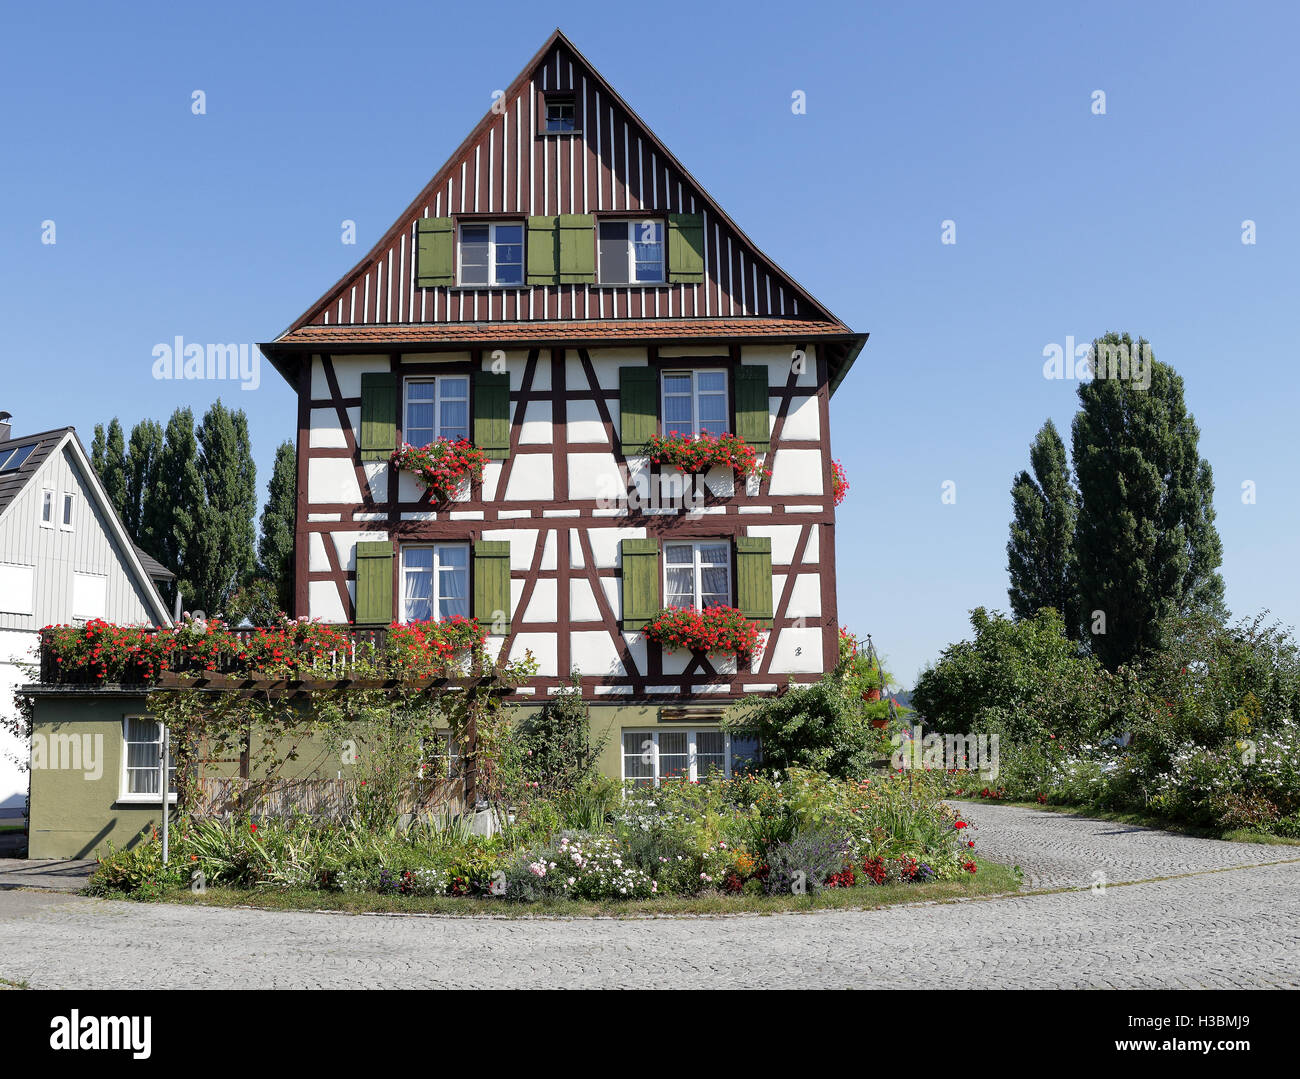 Traditional timber framed German village house with shutters and window boxes - Stock Image